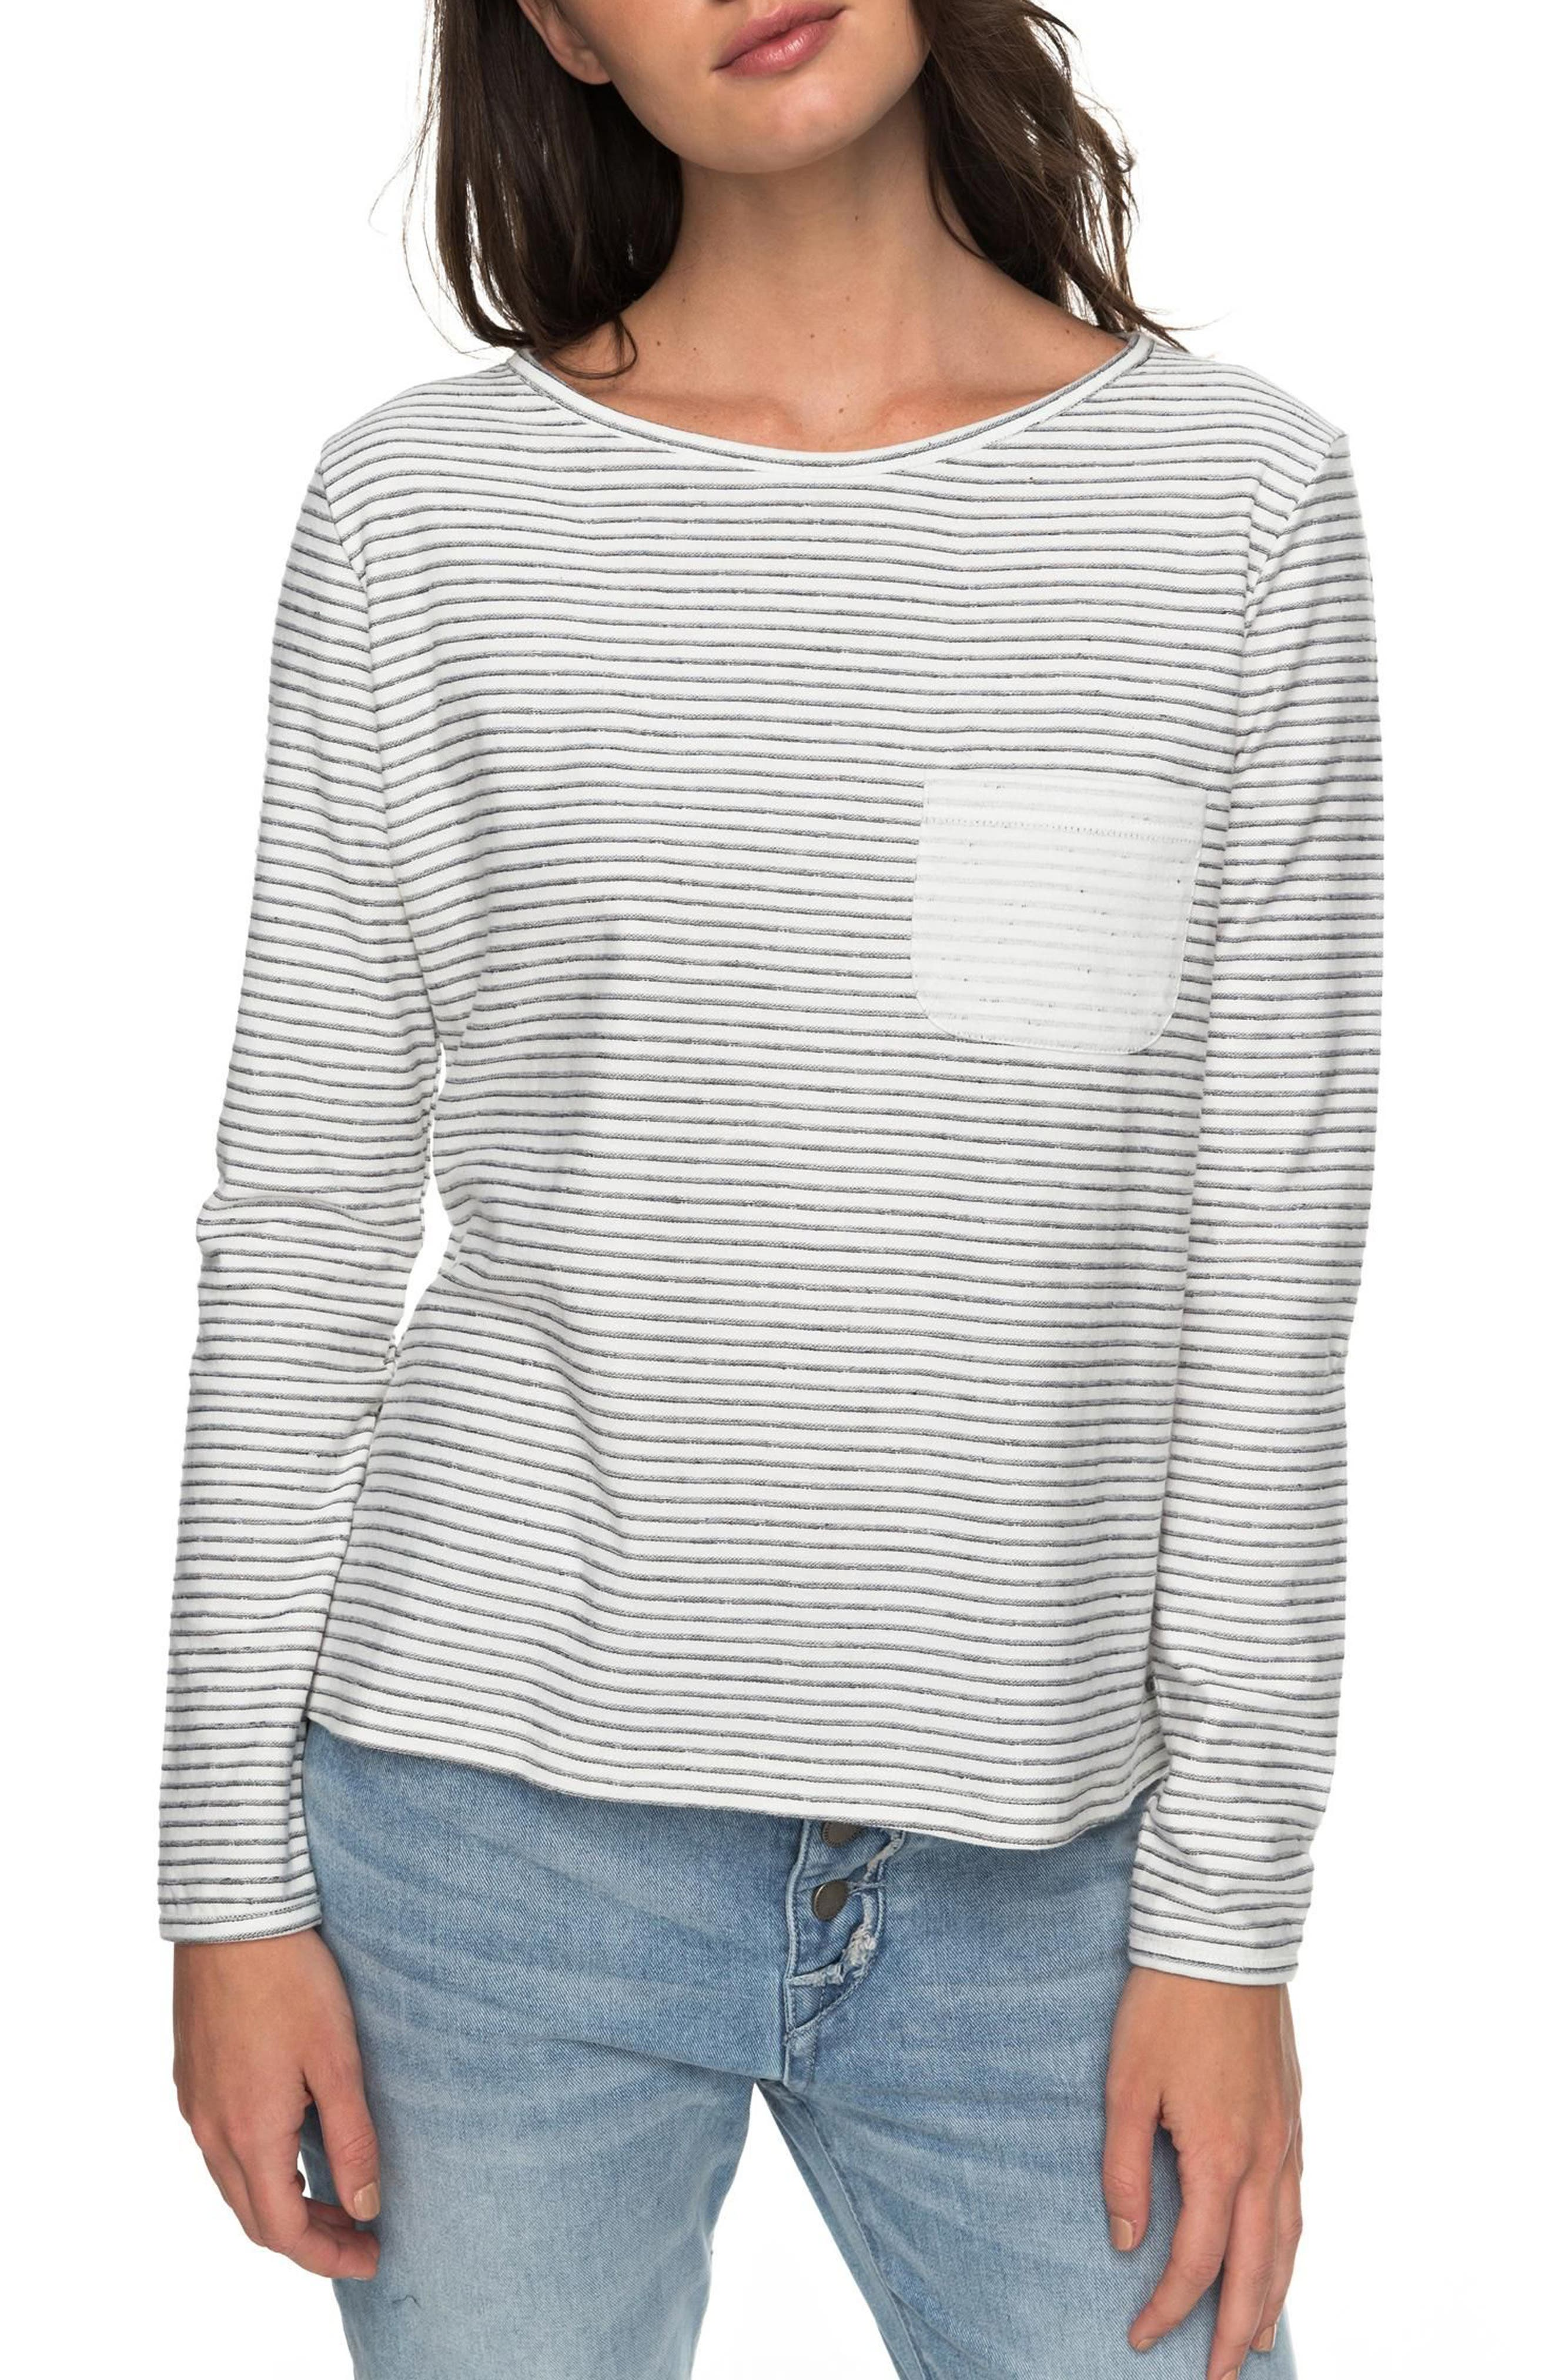 Slice of Heaven Side Tie Top,                         Main,                         color, Marshmallow